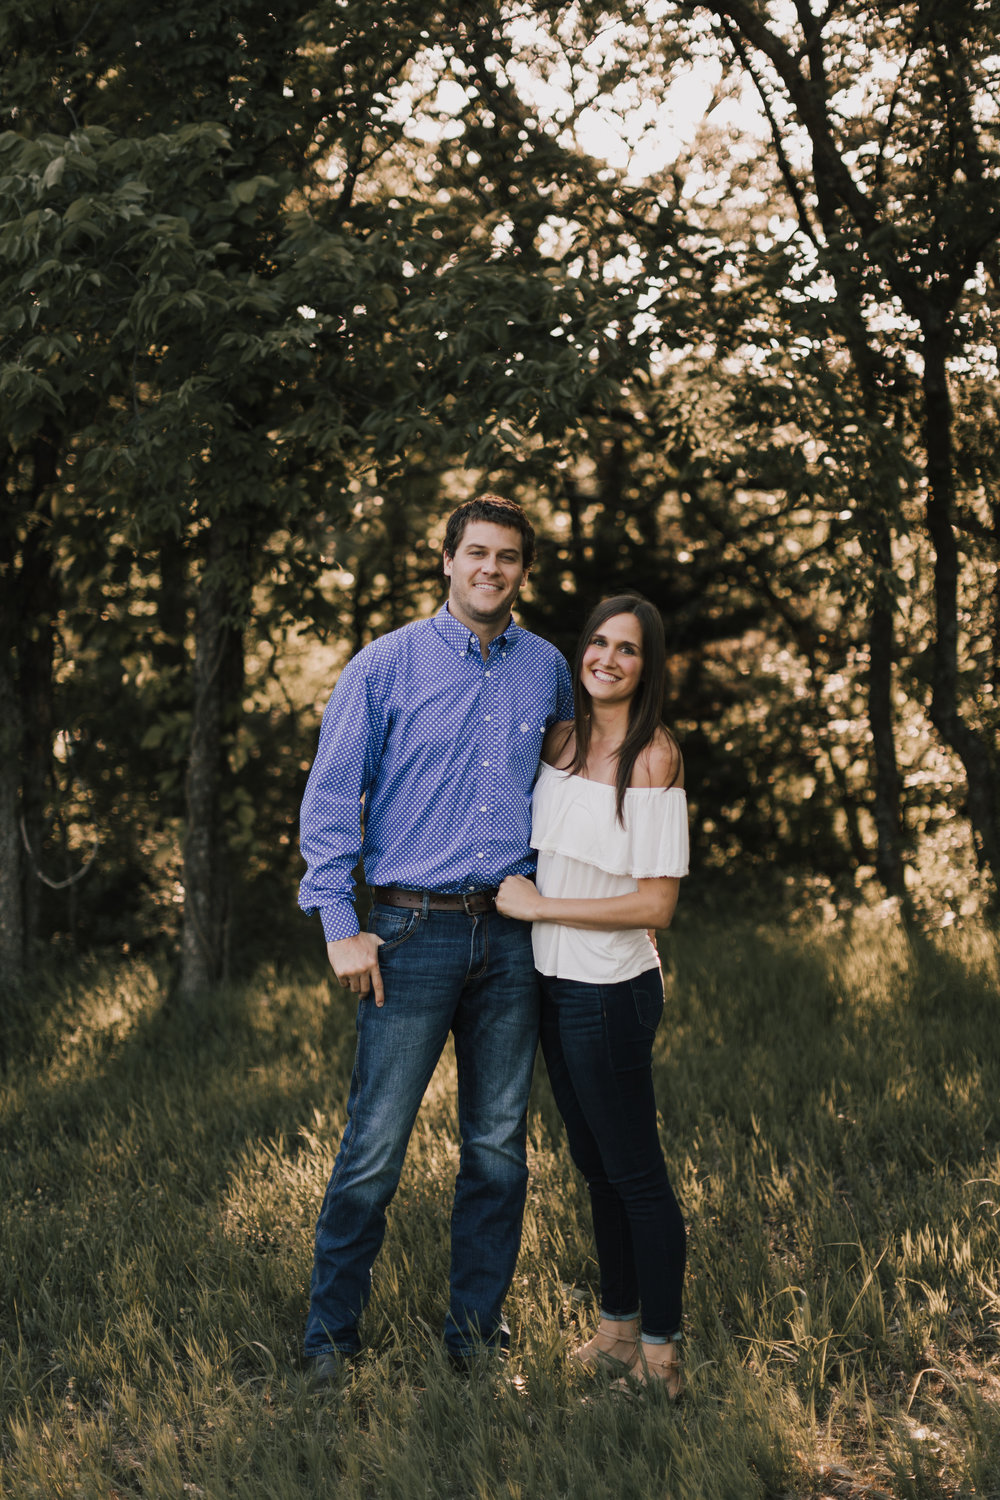 alyssa barletter photography shawnee mission park summer rustic done right engagement session-1.jpg